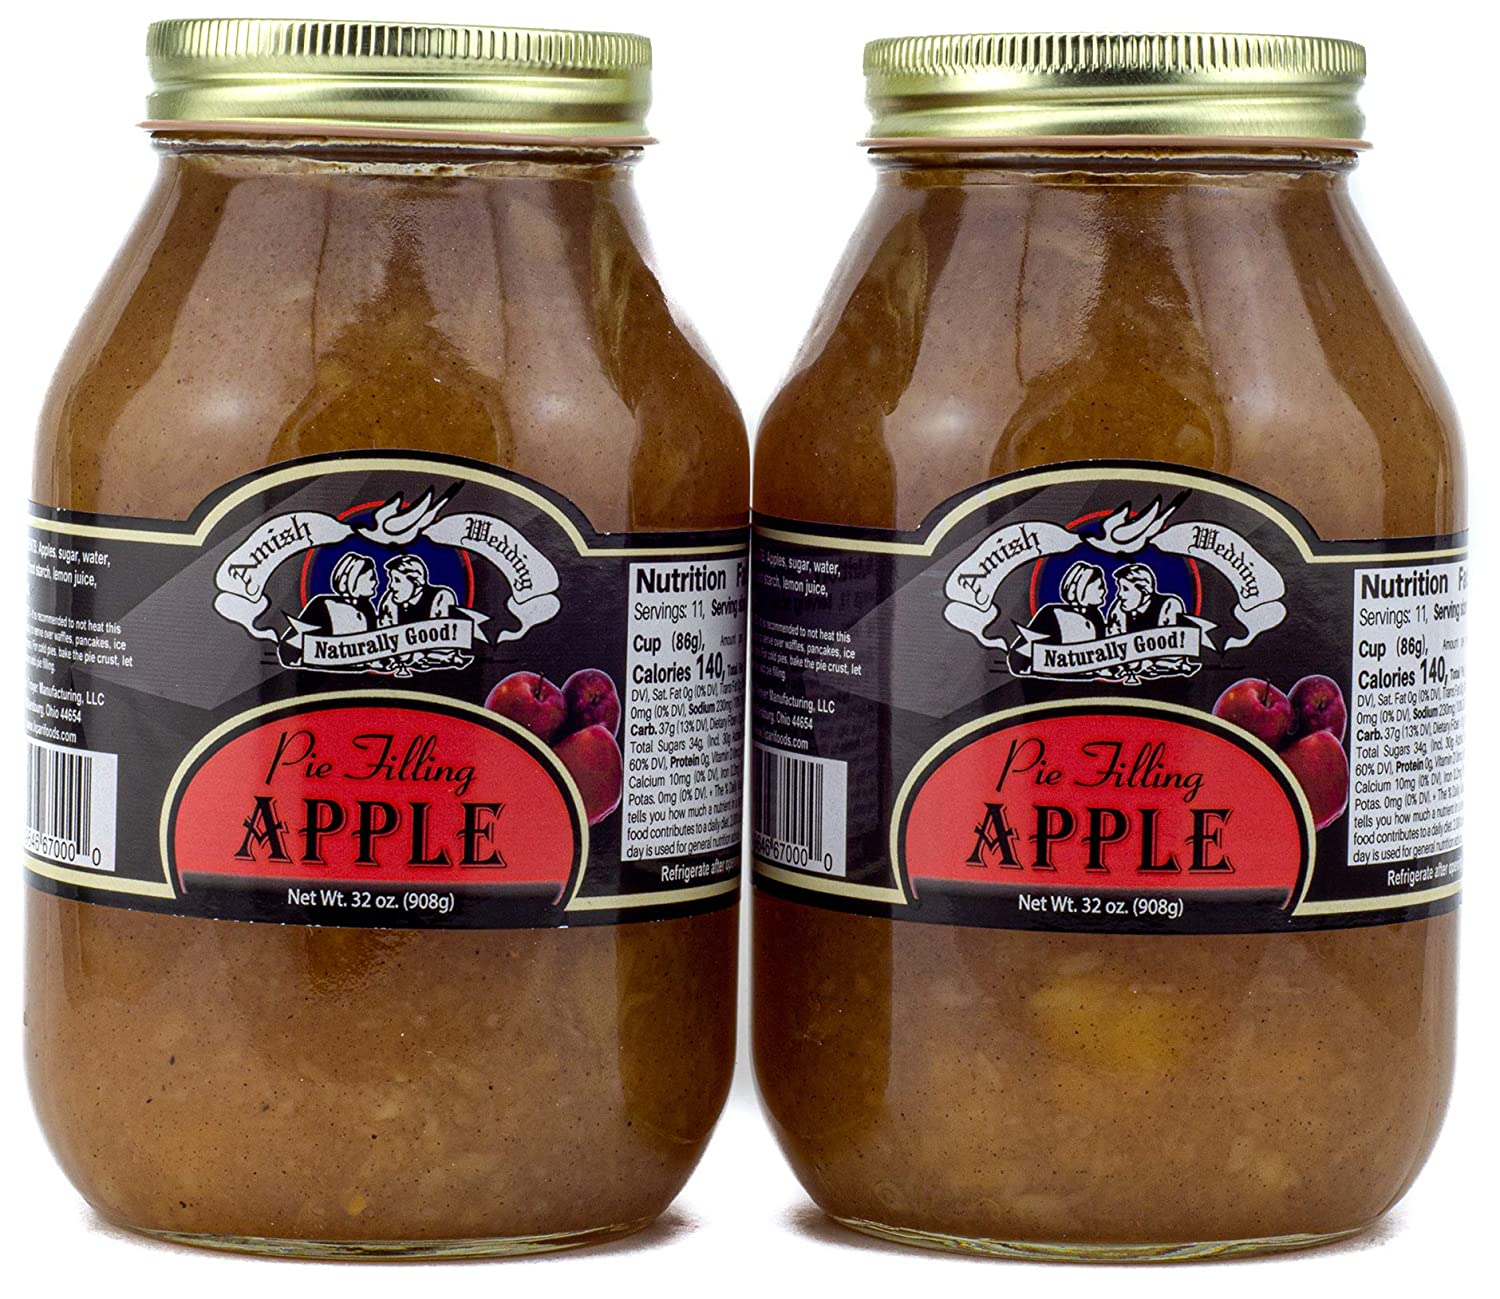 Factory outlet Amish Wedding Apple Pie Filling 2 Pack of Ounces 32 Cheap mail order specialty store